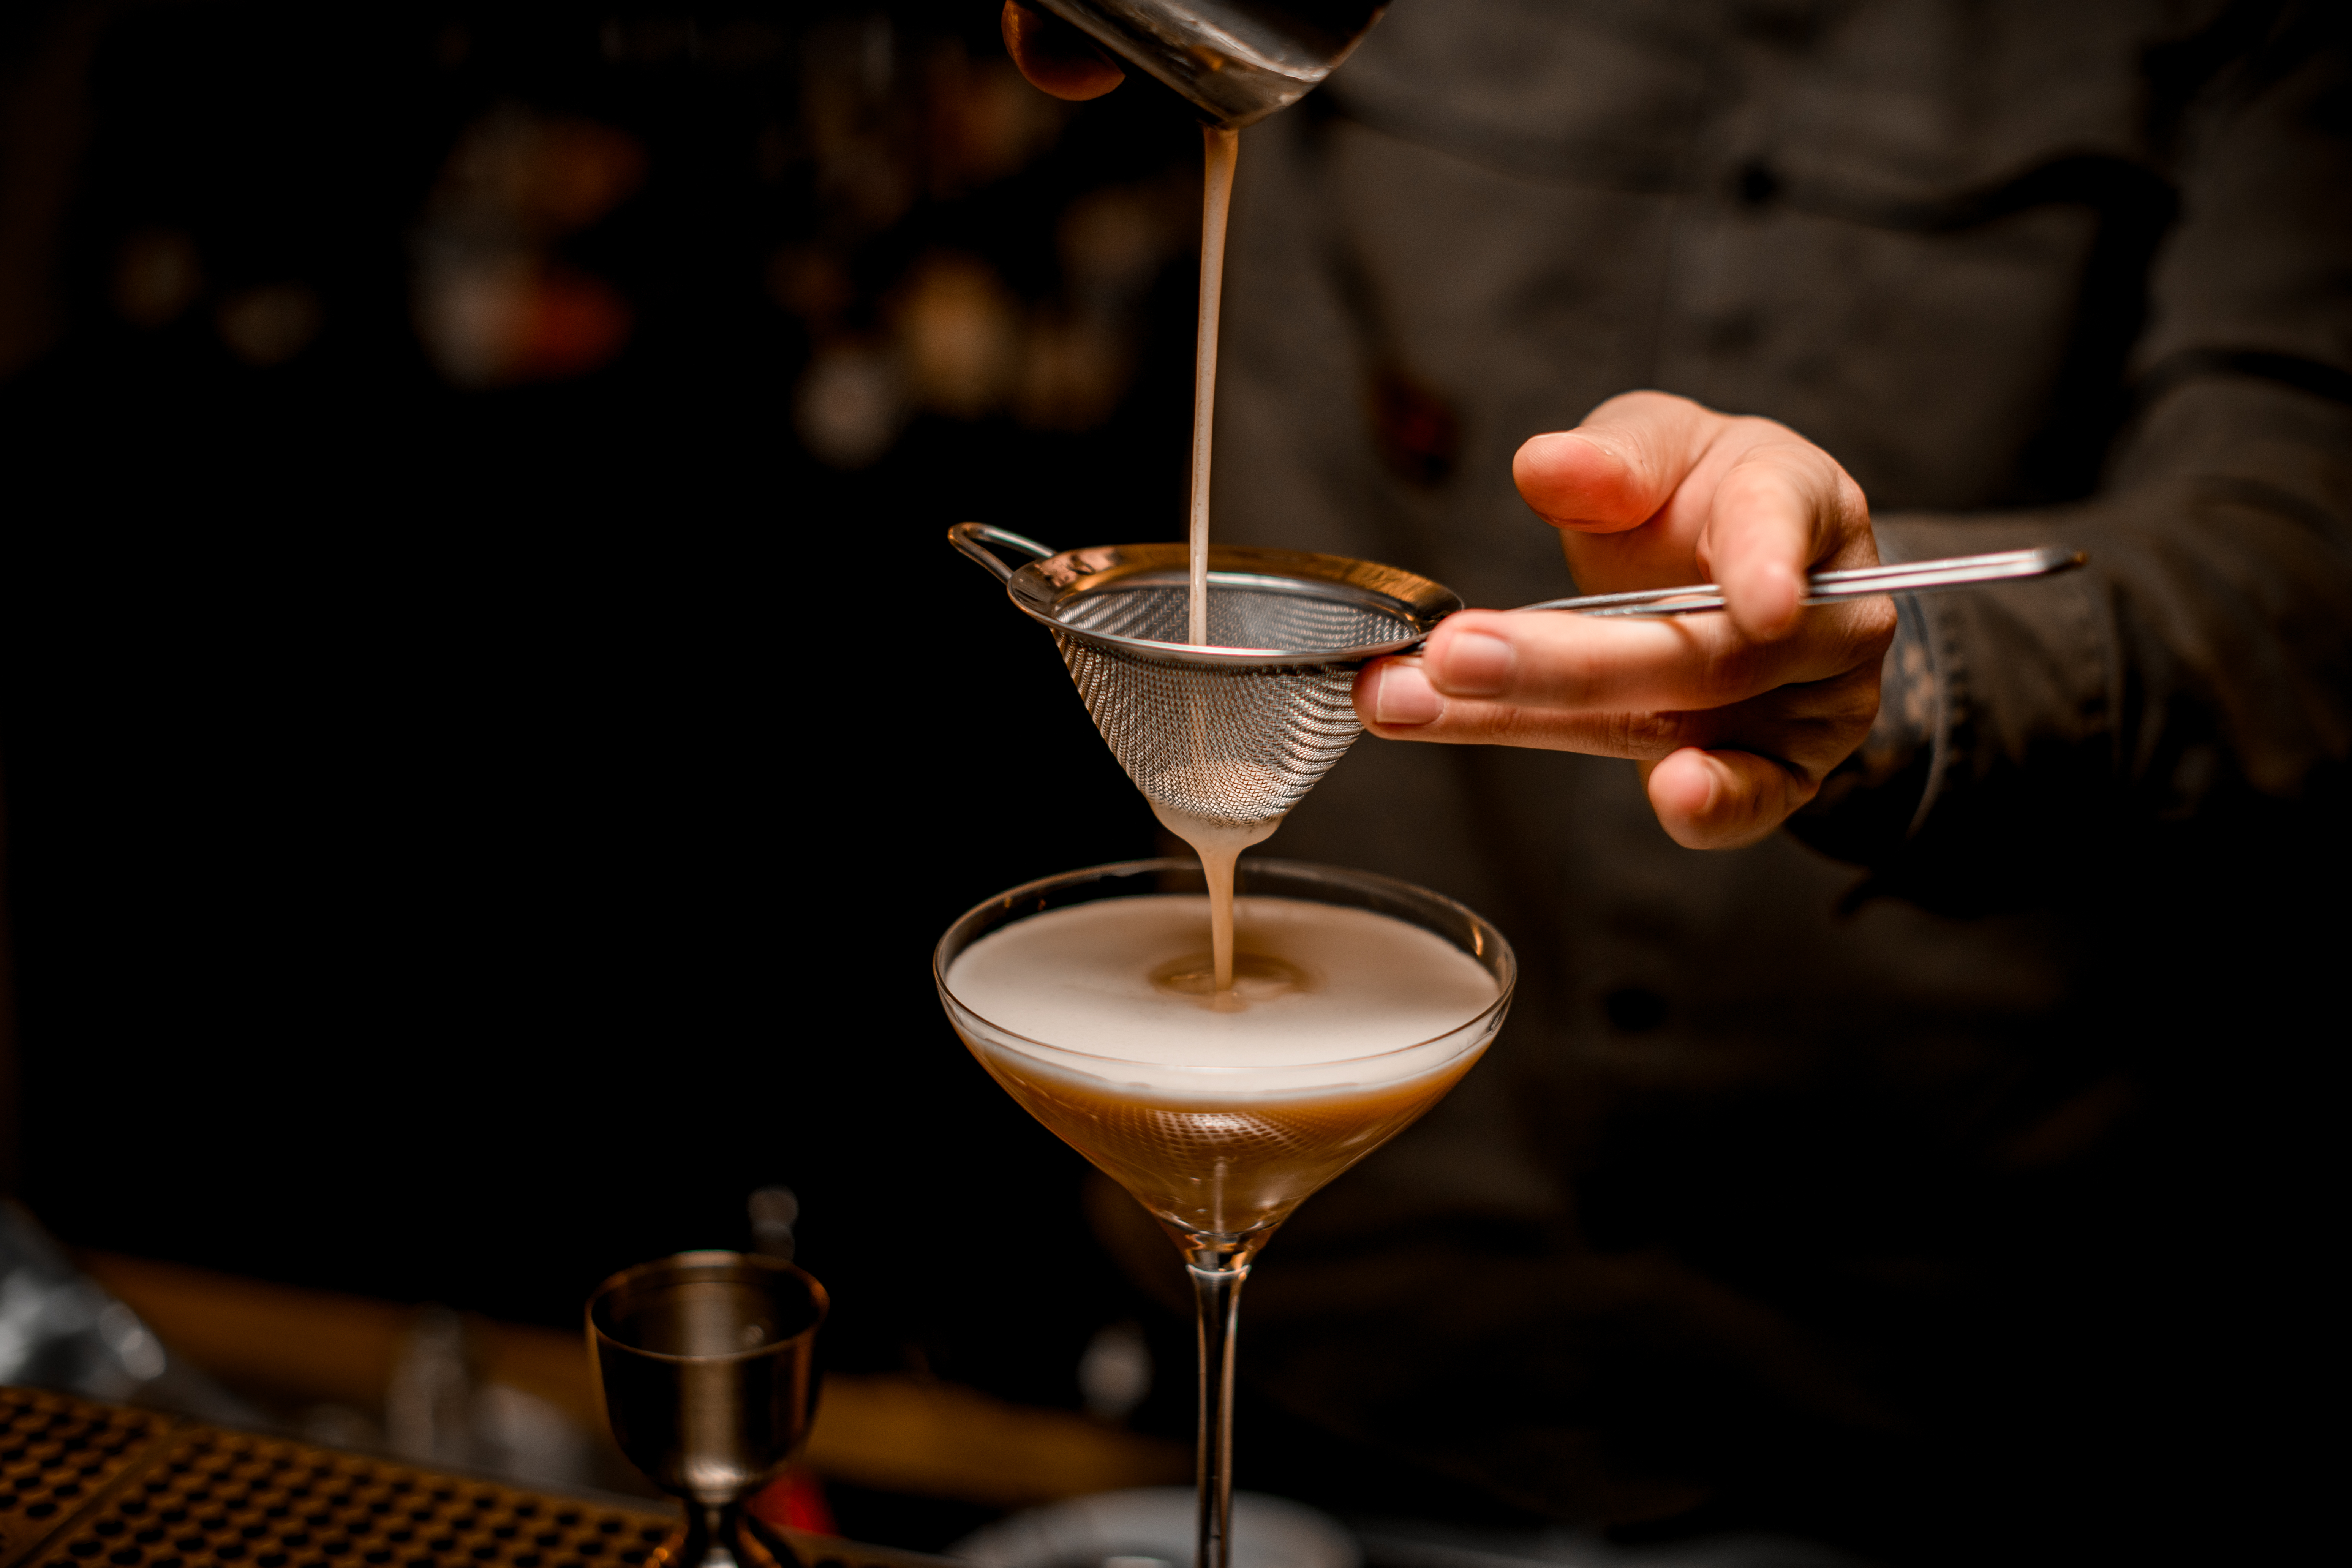 The hands and torso of a bartender in a black chef's coat, using a metal sieve to strain an espresso martini into a martini glass on a bar top.